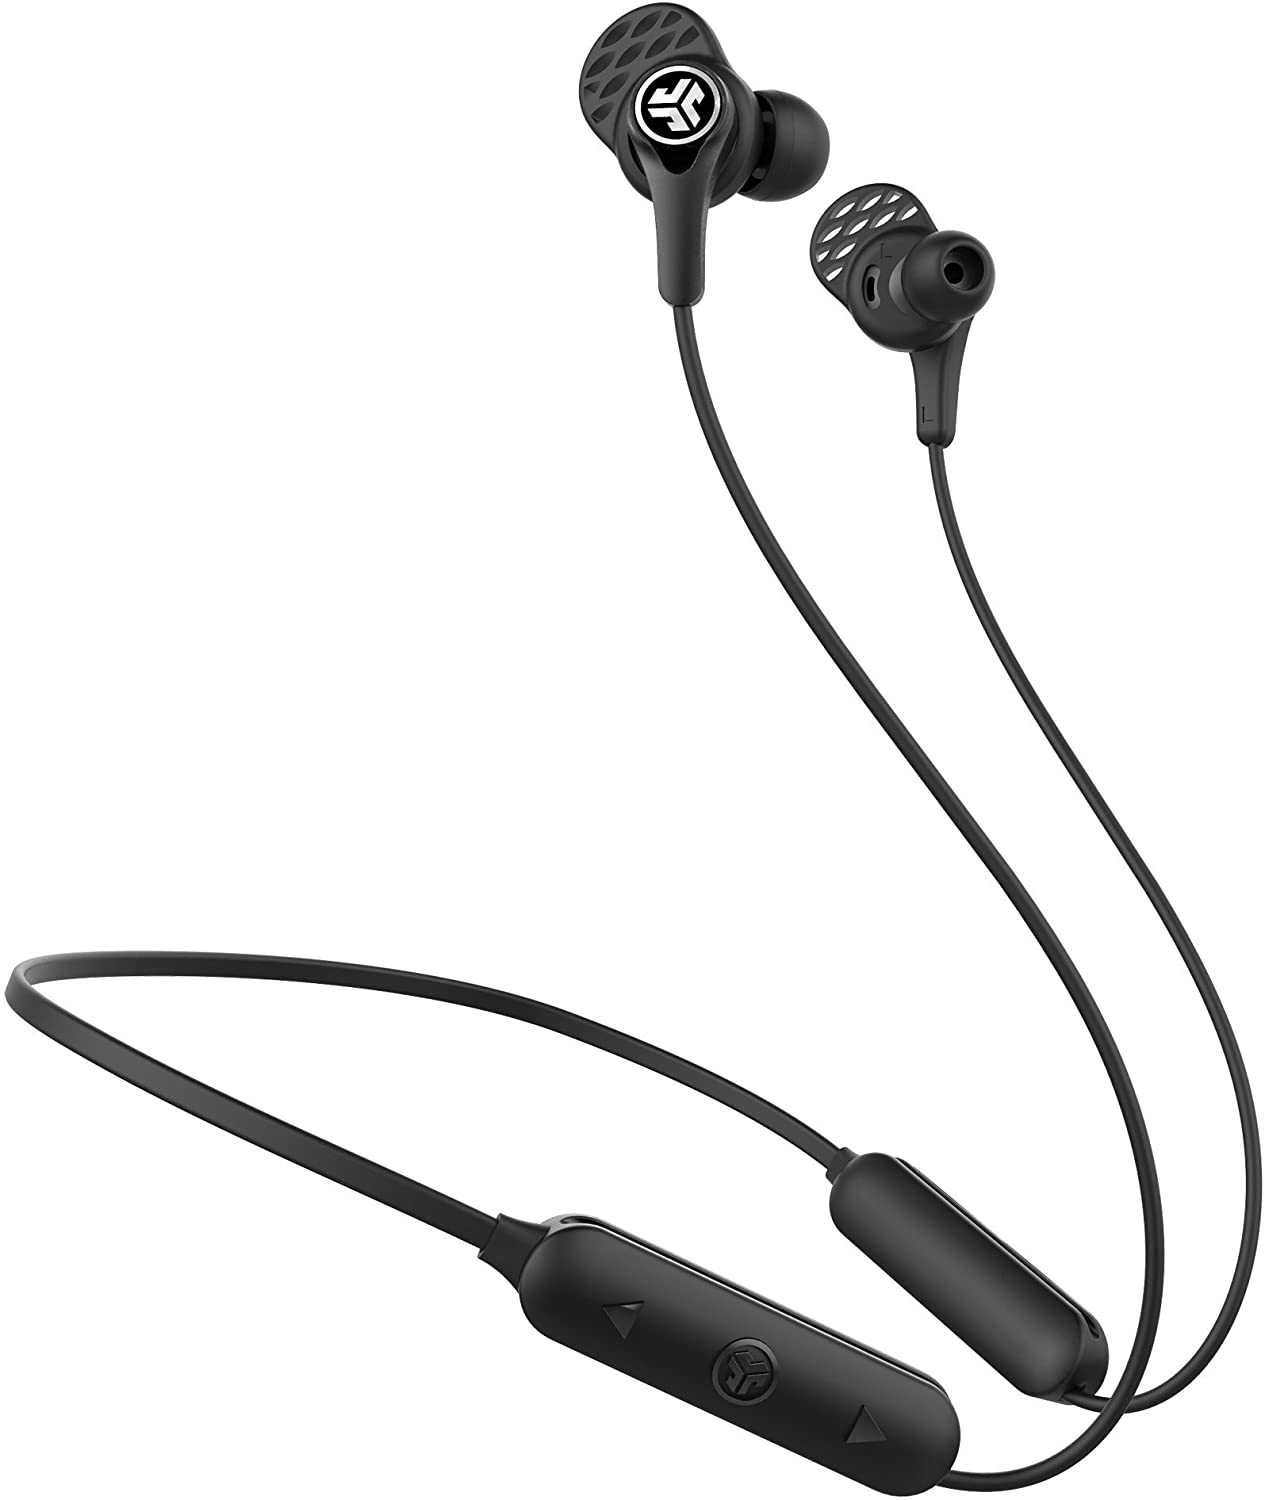 JLab Audio Epic Executive Wireless Active Noise Canceling Earbuds   Bluetooth 4.1   11-Hour Battery Life   Universal Music Control   Bluetooth Headphones, Travel Case Included   Black